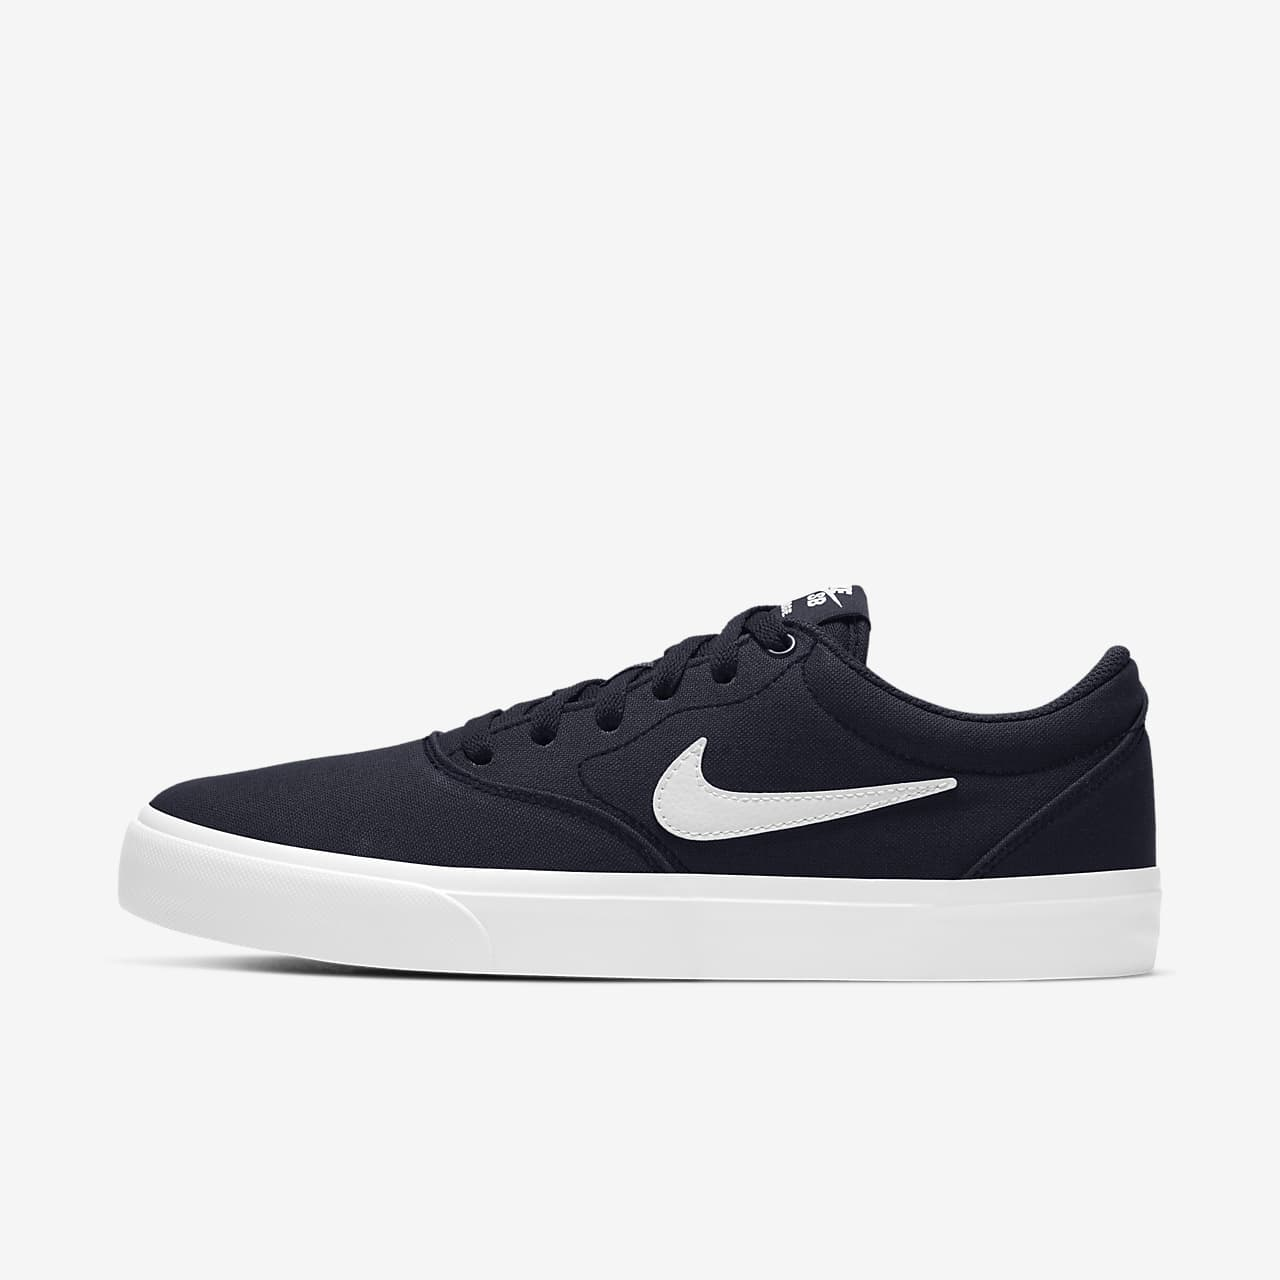 Nike SB Charge Canvas Herren-Skateboardschuh